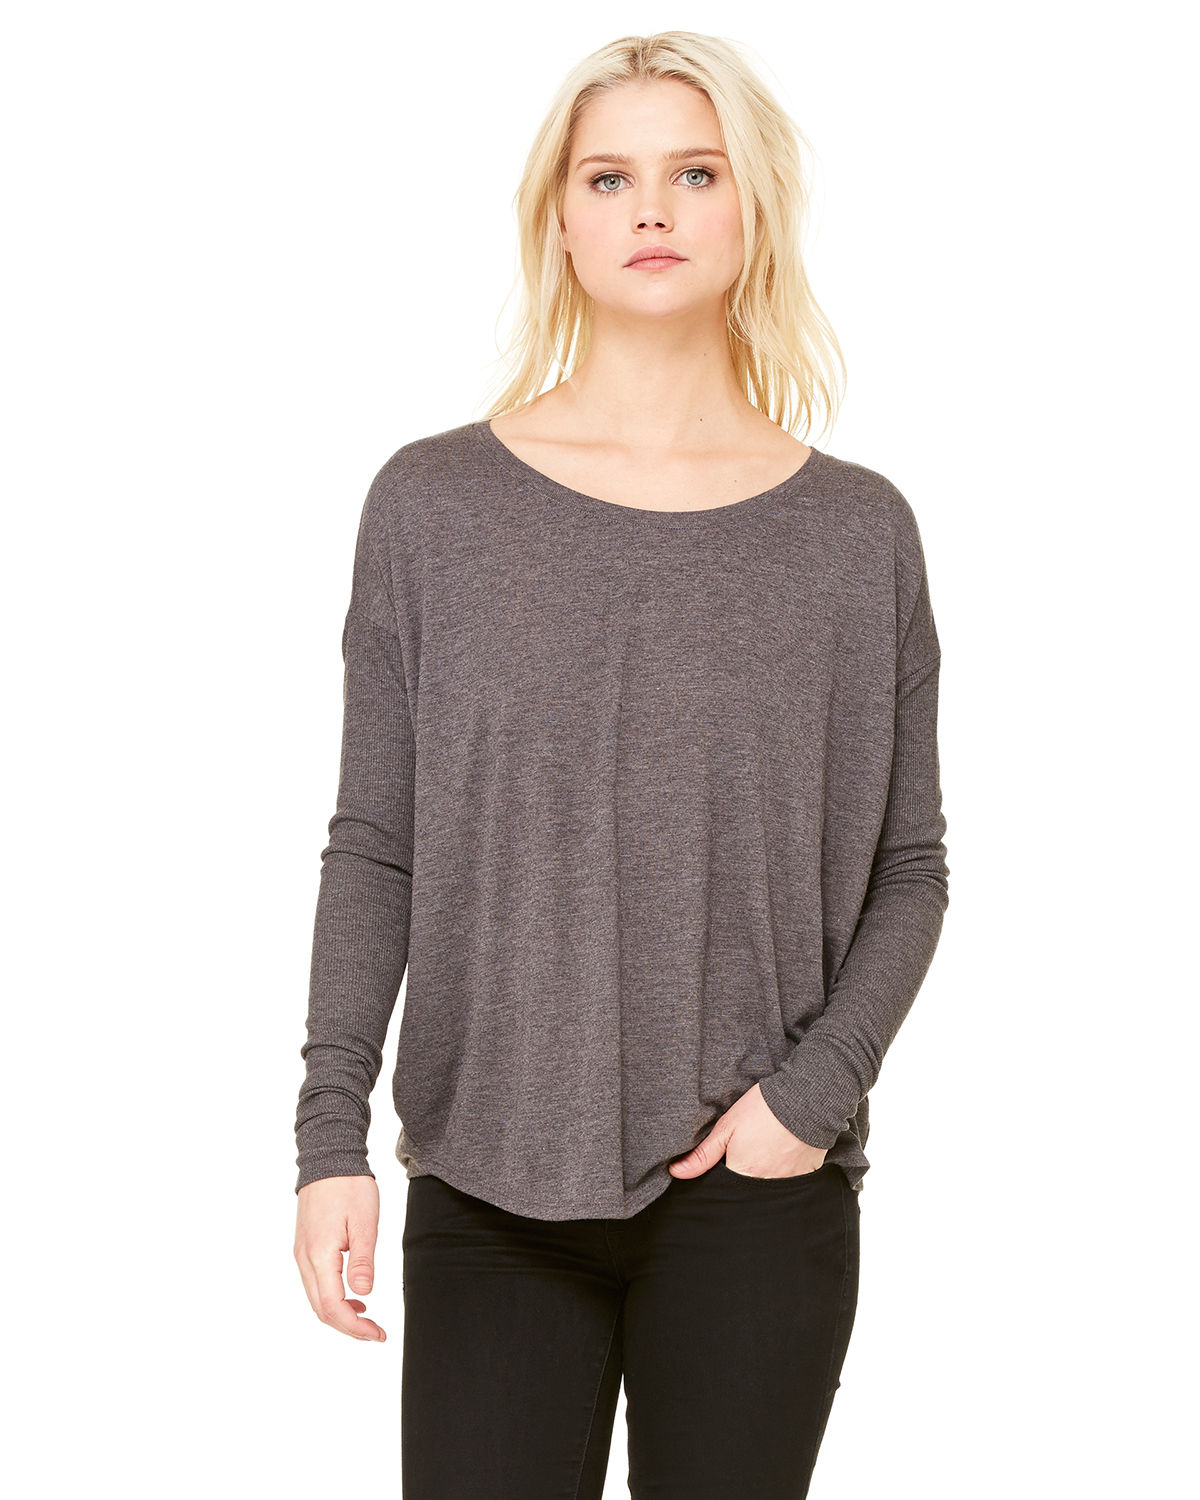 Ladies' Flowy Long-Sleeve T-Shirt with 2x1 Sleeves